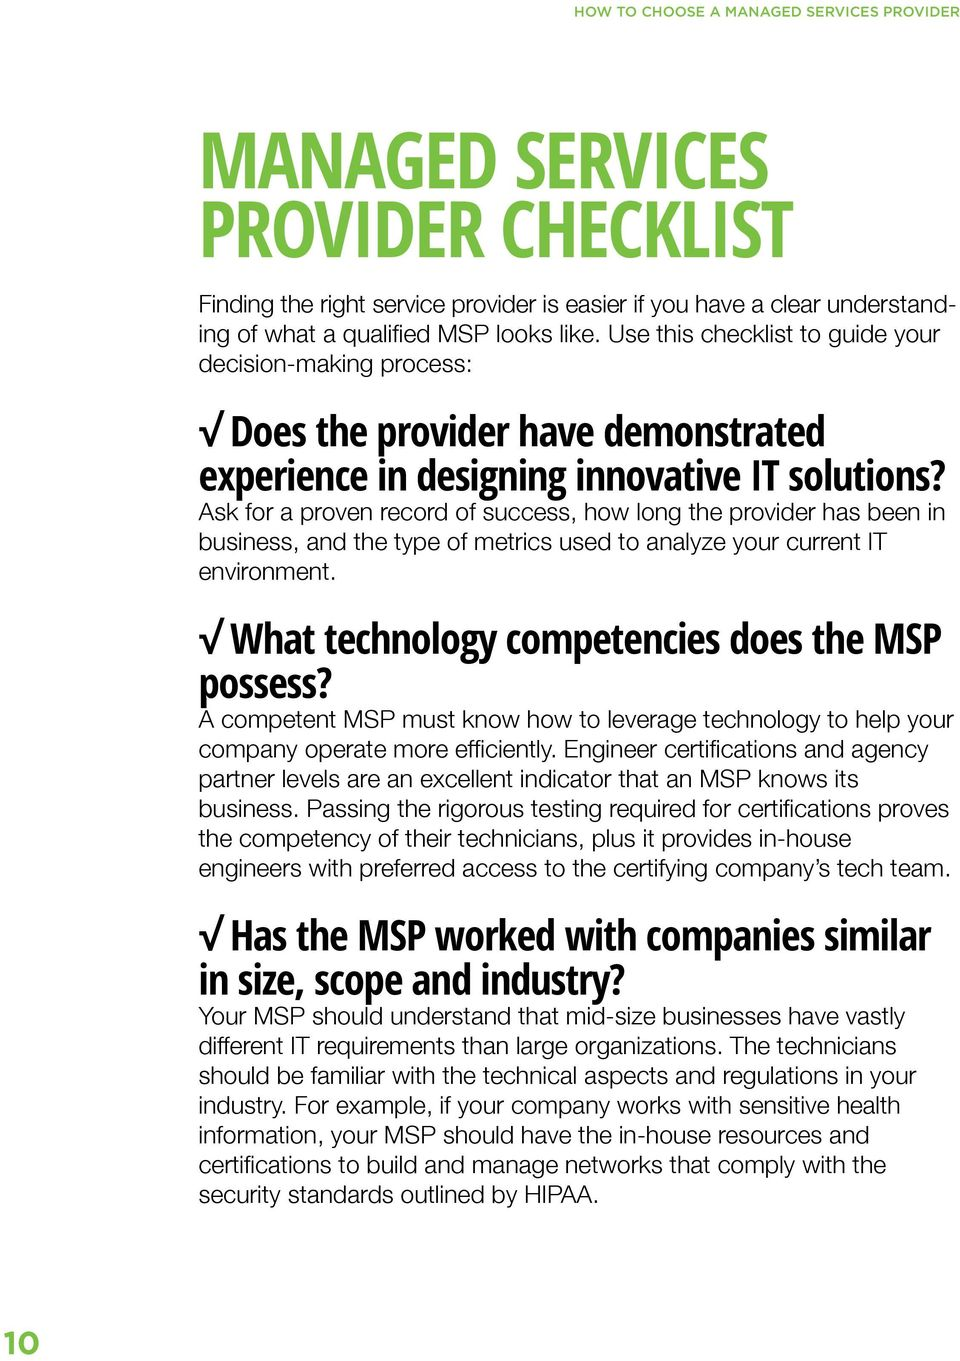 Ask for a proven record of success, how long the provider has been in business, and the type of metrics used to analyze your current IT environment. What technology competencies does the MSP possess?